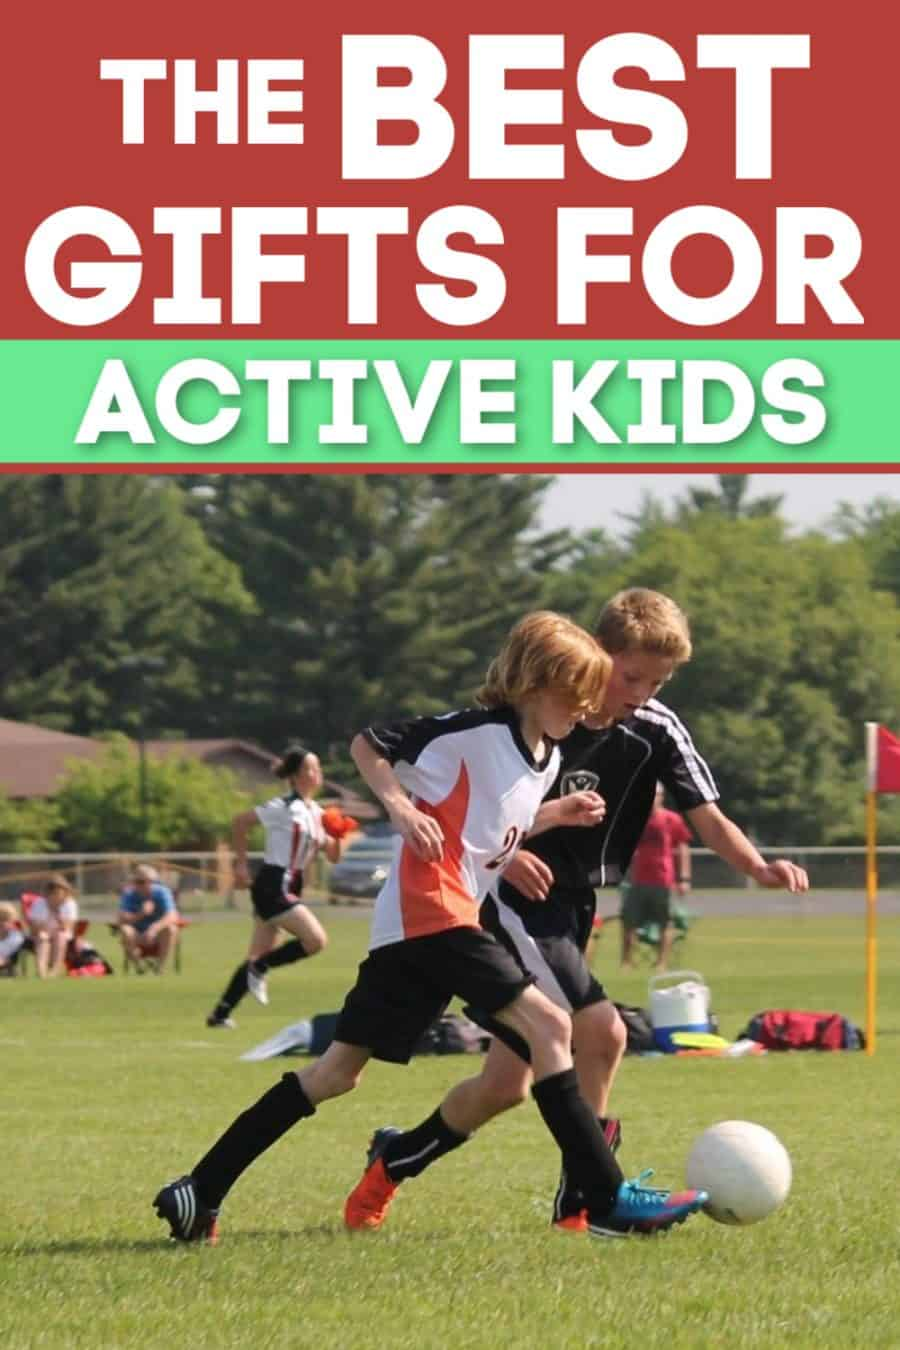 The Best Gifts for Active Kids